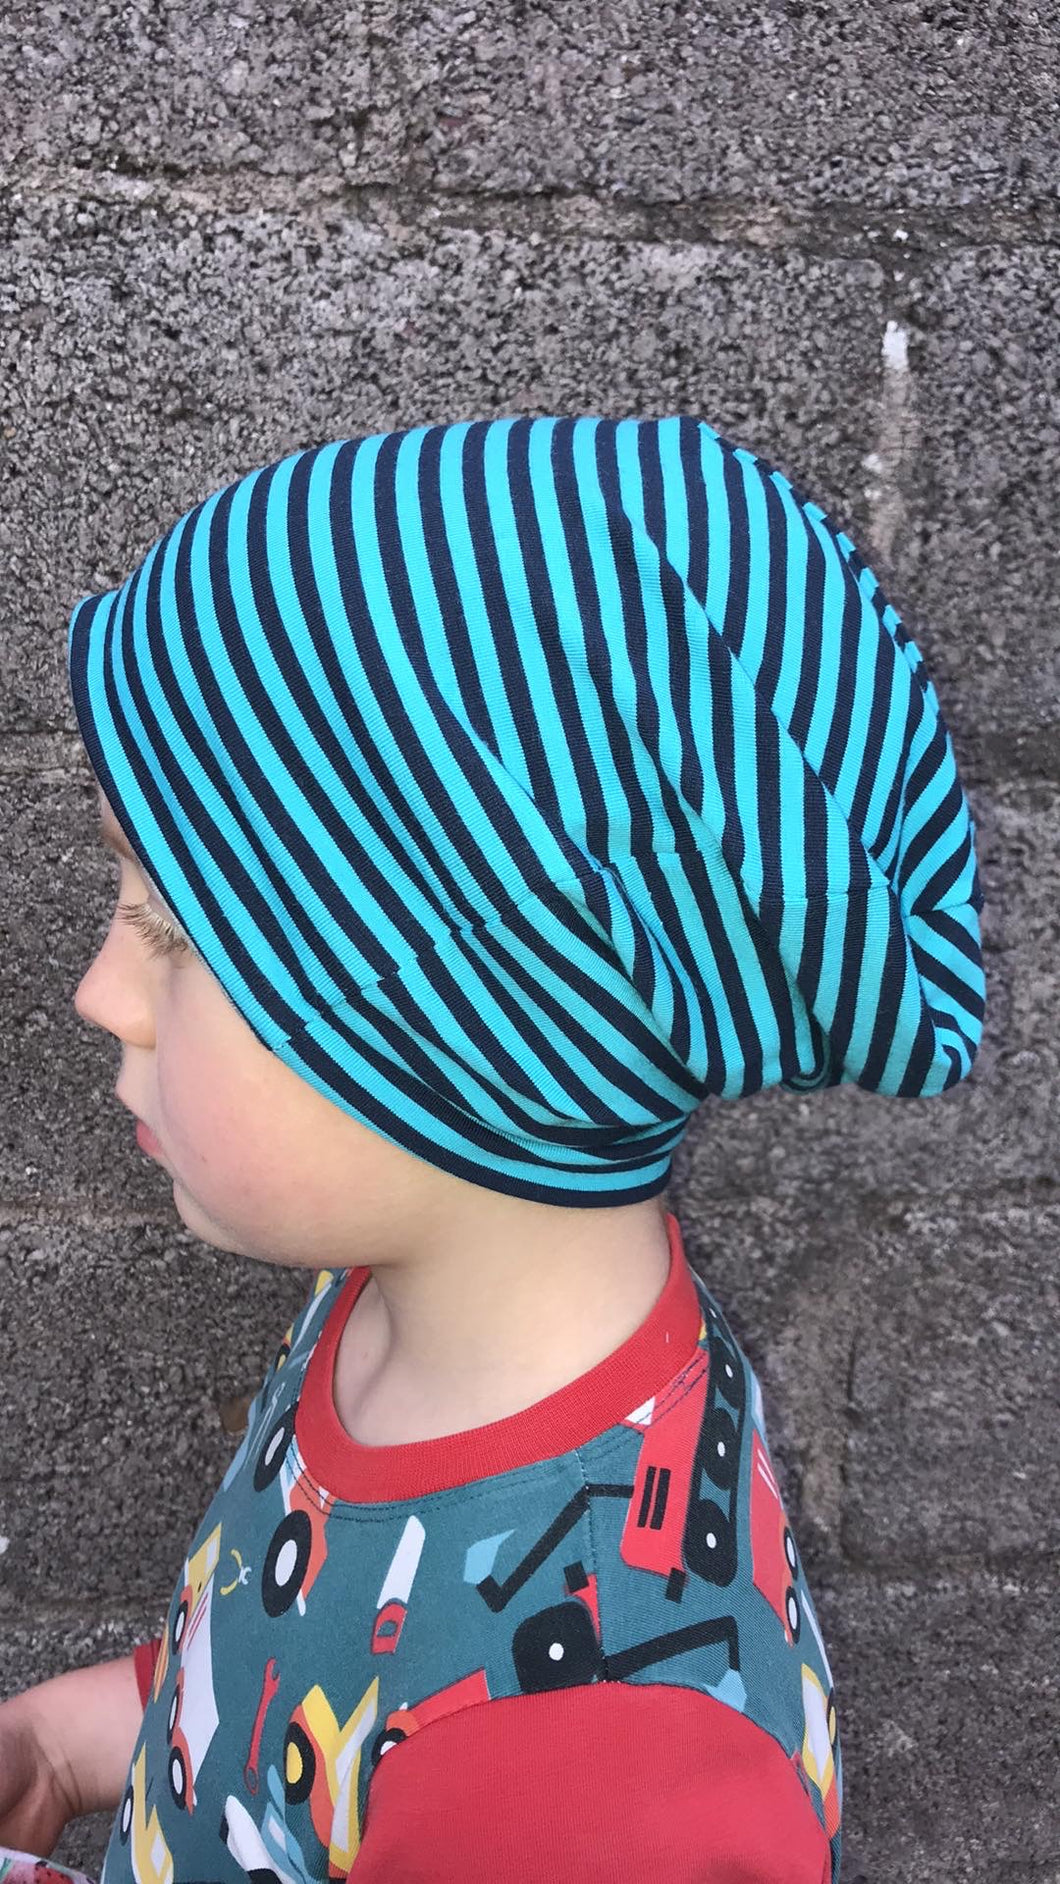 Slouchy hat, organic hat